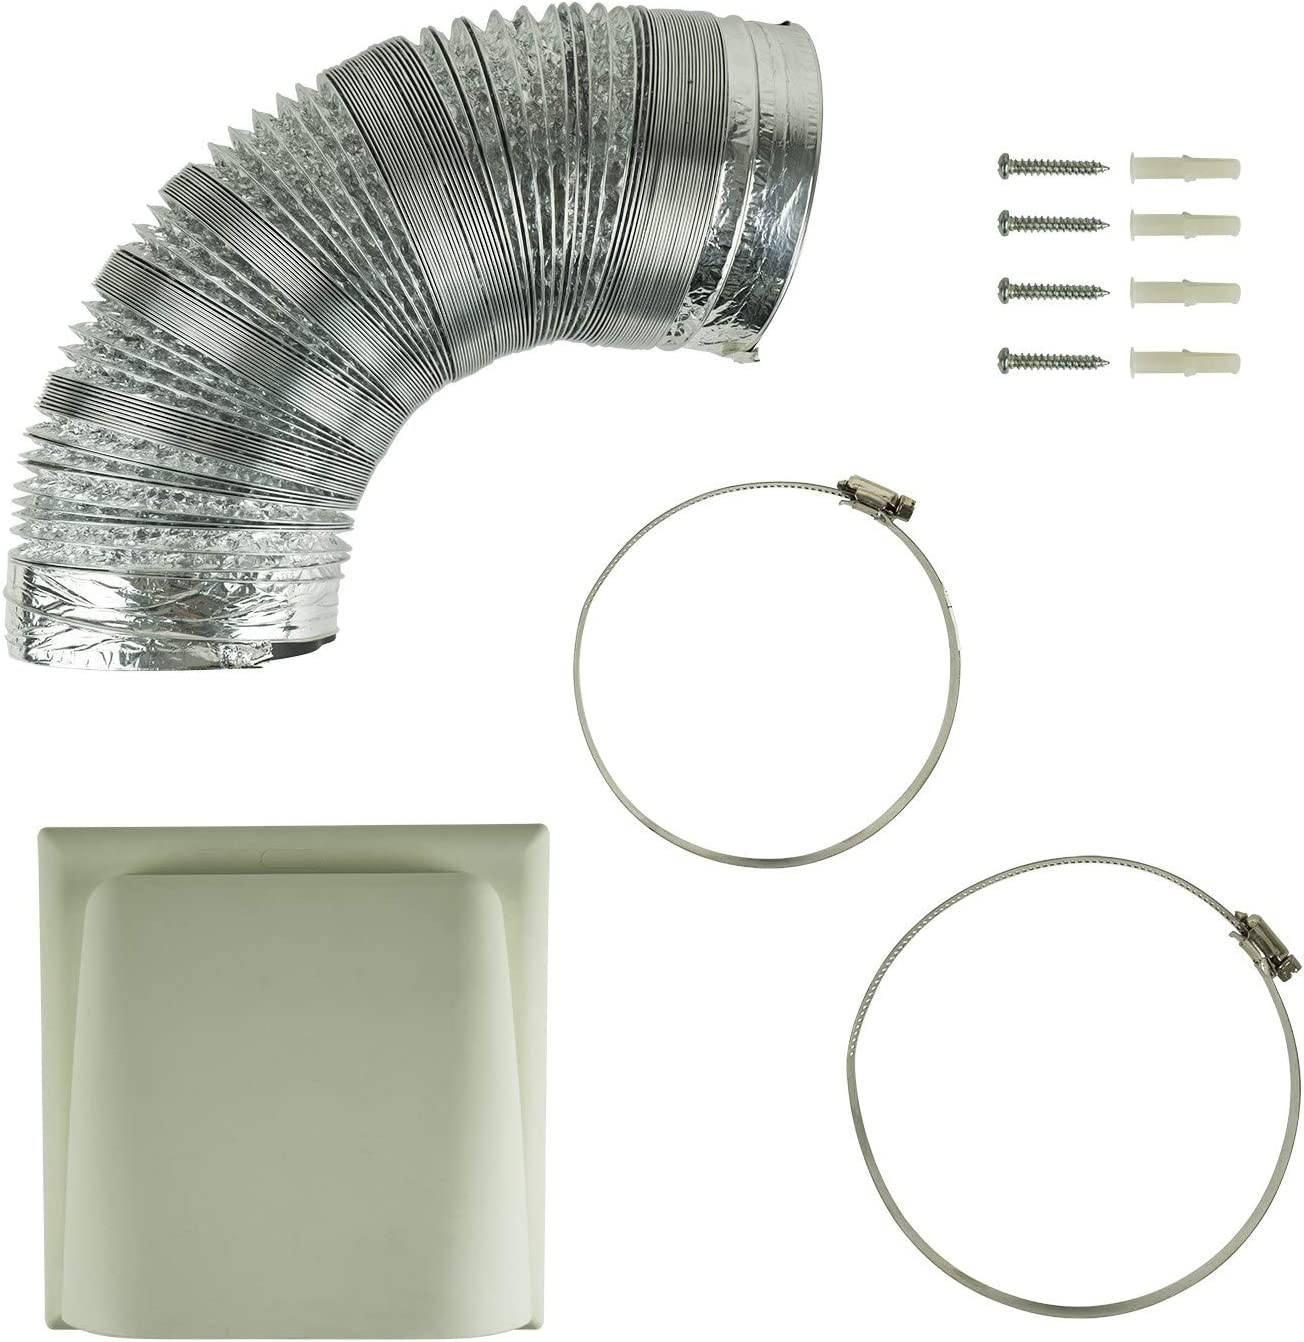 Universal 120mm 125mm Kitchen Cooker Hood Ducting Kit With Cowl Vent 3m Length Amazon Co Uk Kitchen Home